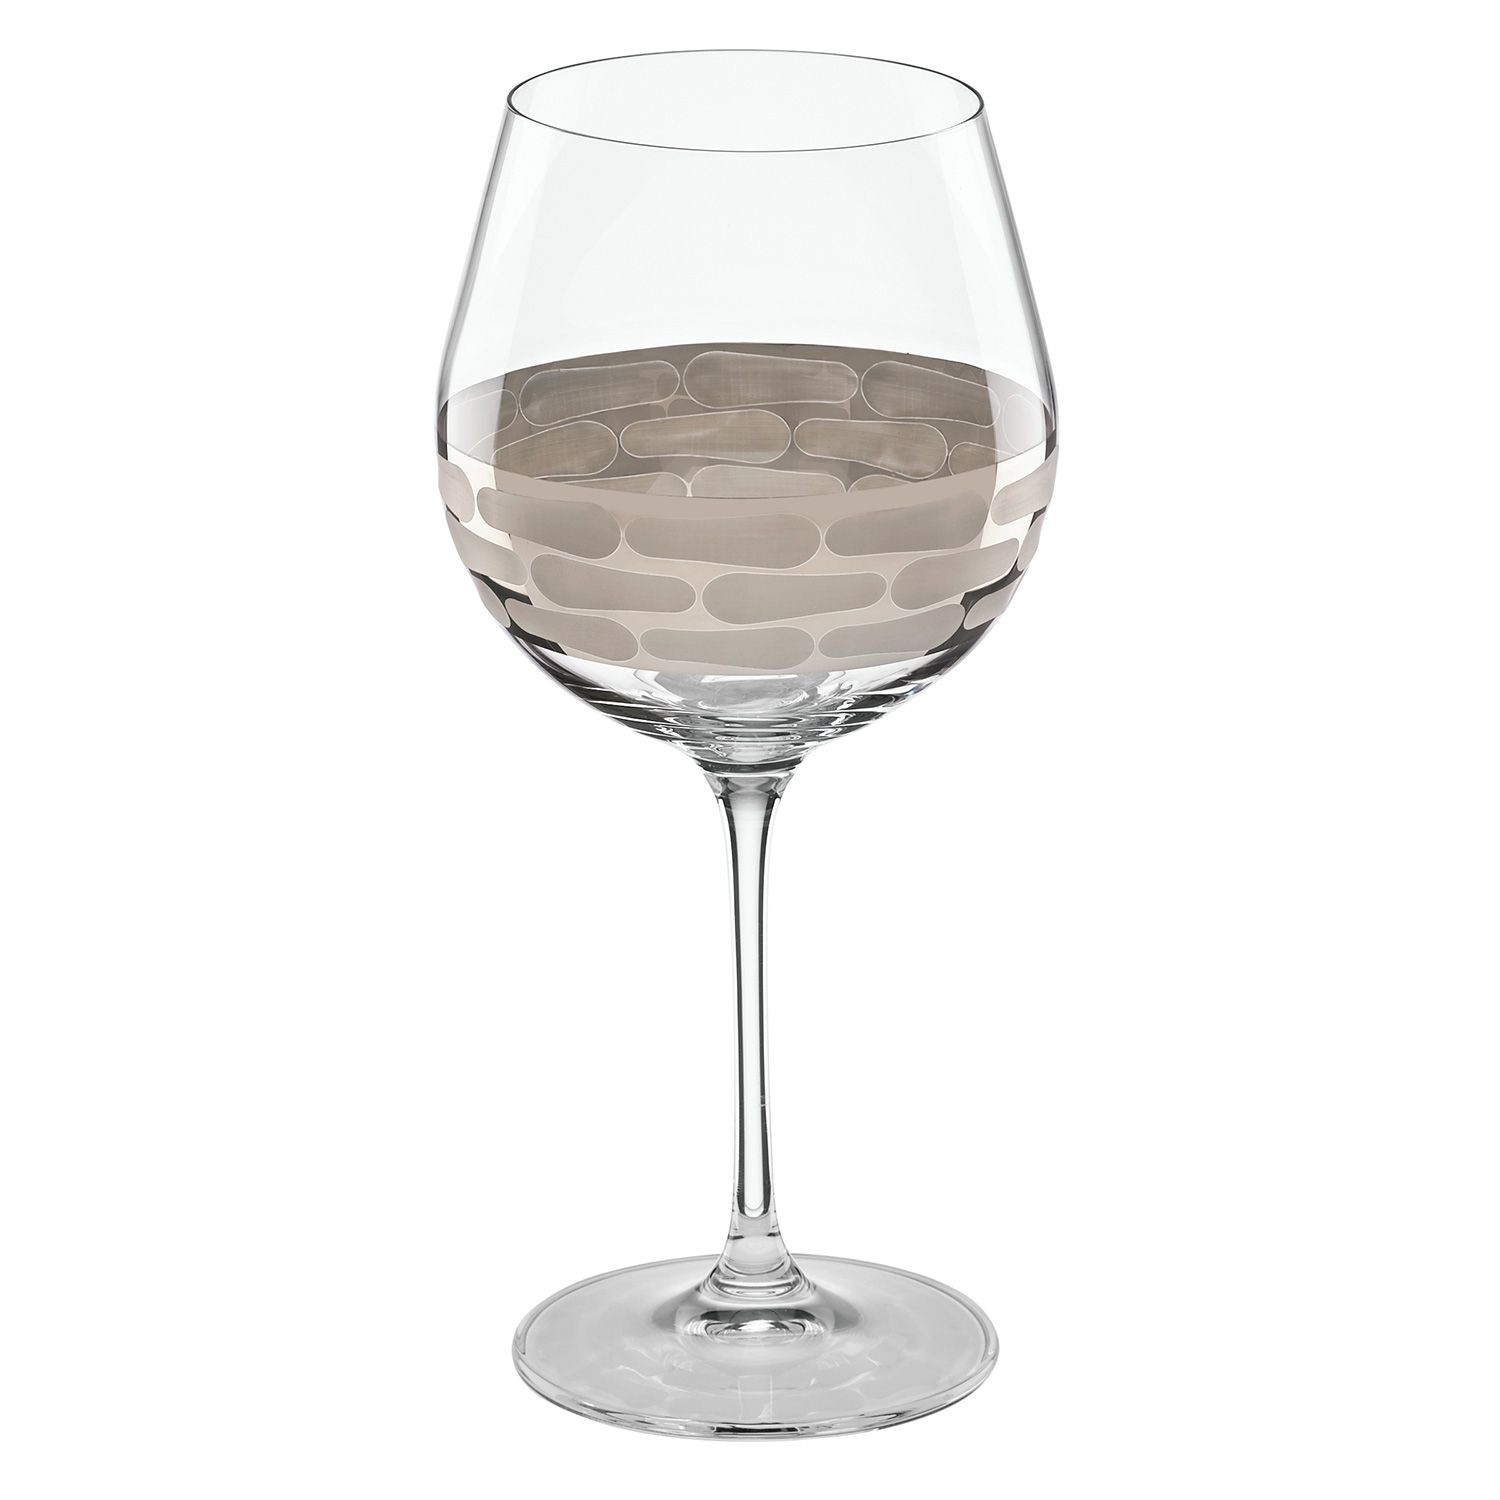 10 inch waterford crystal vase of 21 waterford crystal vase marquis the weekly world in sale red wine glass via williamashley com